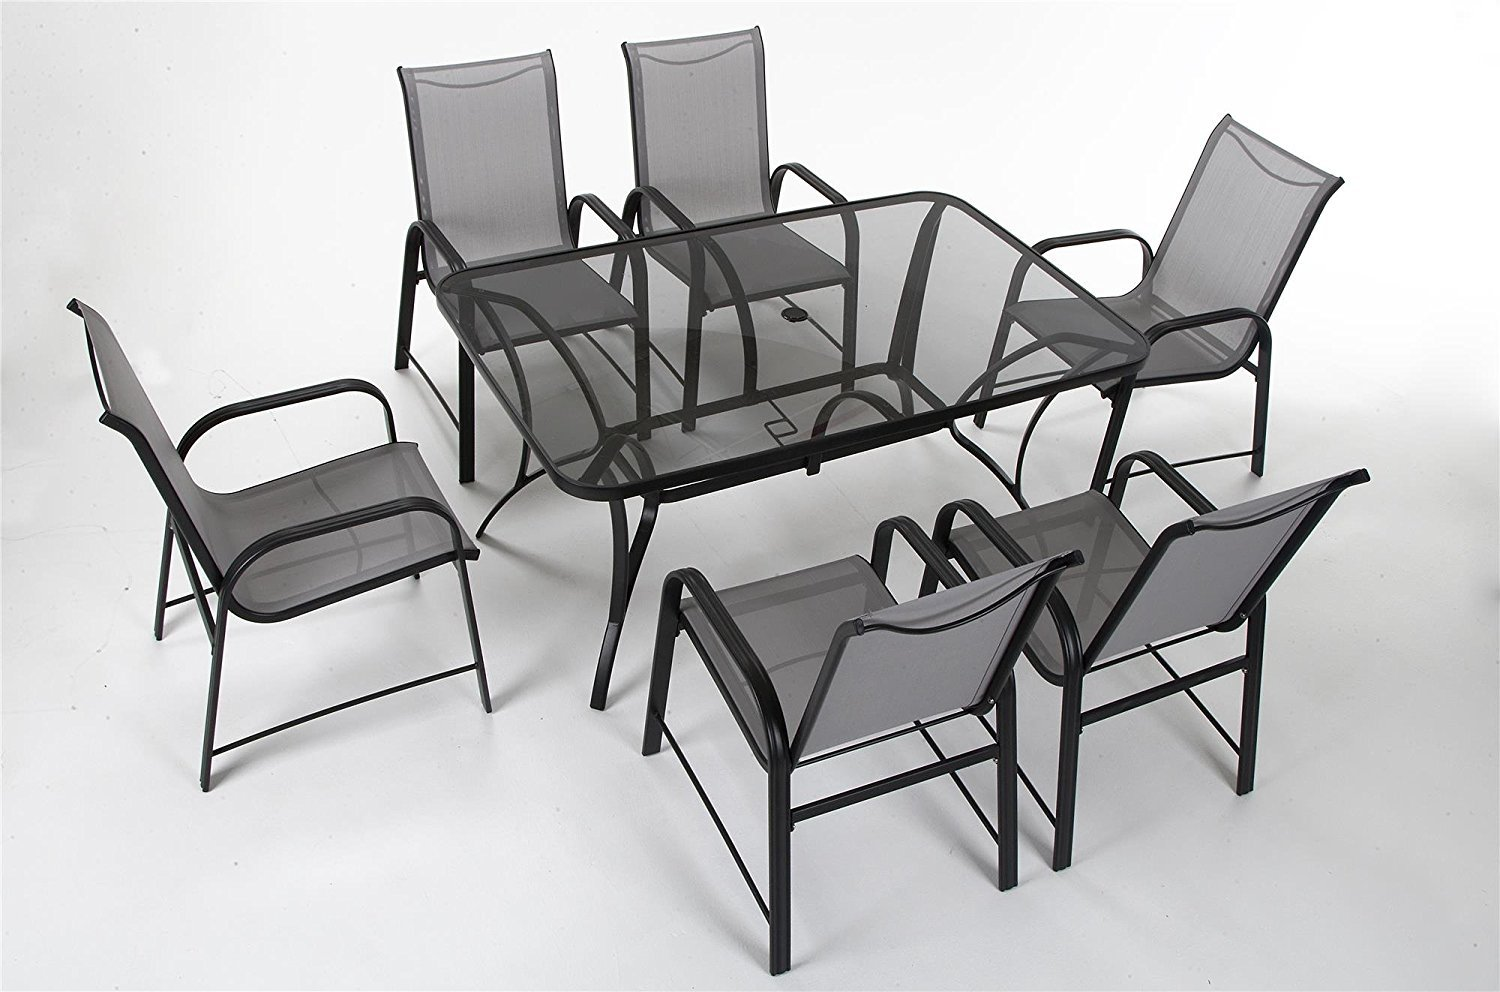 COSCO 88647GLGE Outdoor Living 7 Piece Paloma Steel Patio Dining Set, Light/Dark Gray by Cosco Outdoor Living (Image #14)